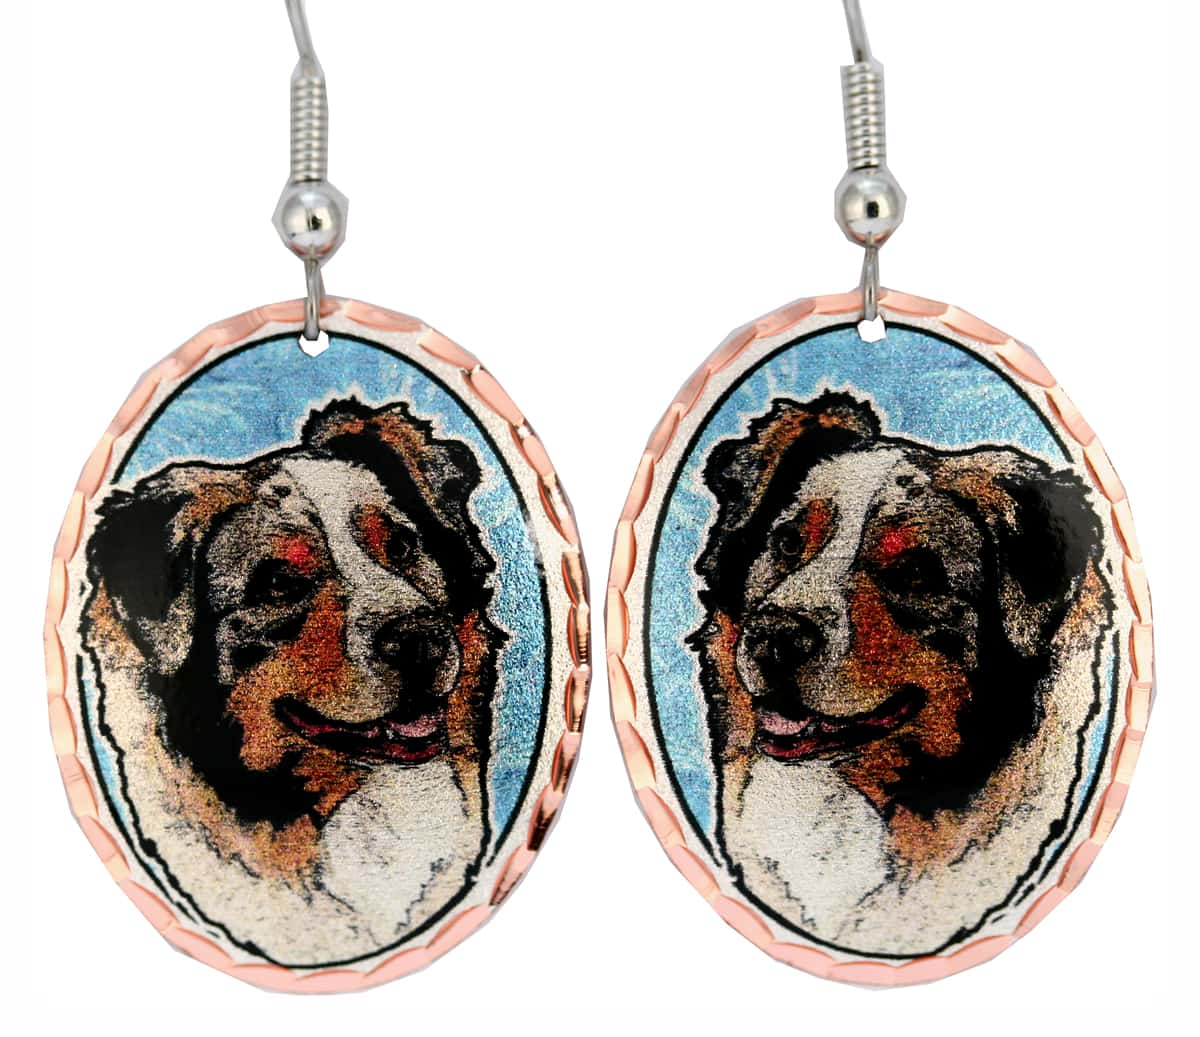 Australian Shepherd Unique Dog Jewelry Earrings